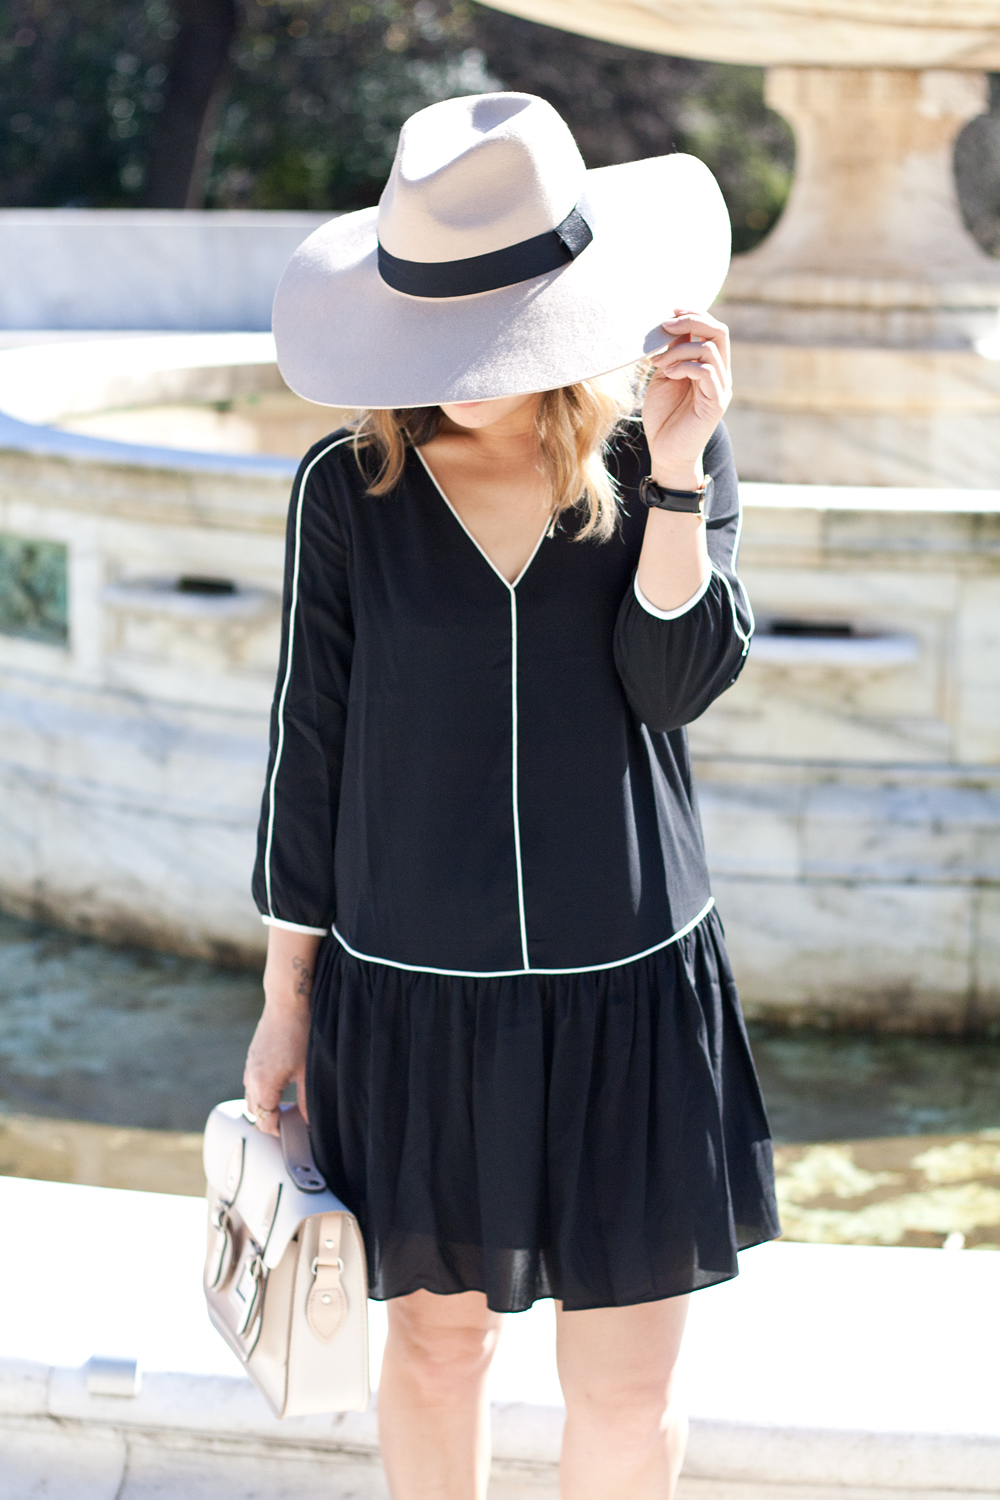 04cooperandella-dress-mudu-hat-style-fashion-sf